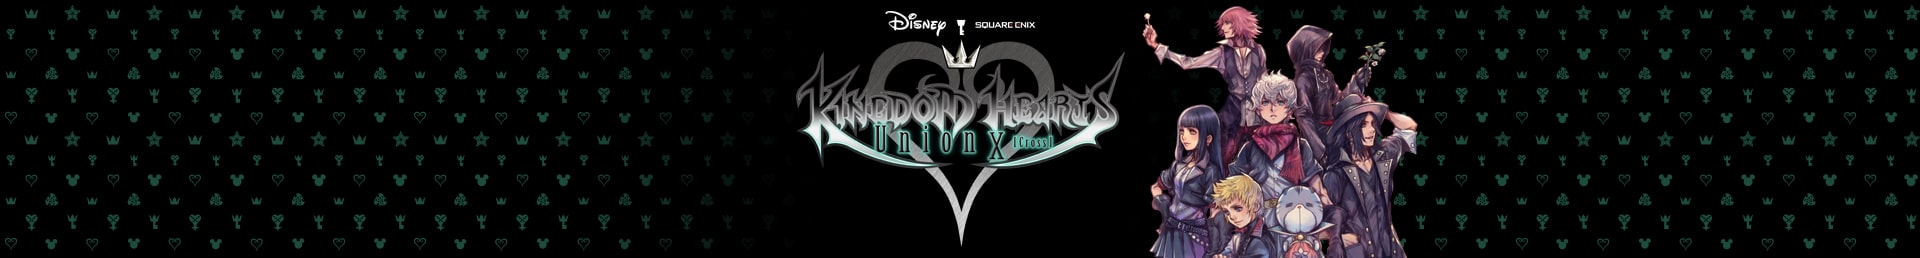 Kingdom Hearts Union Cross